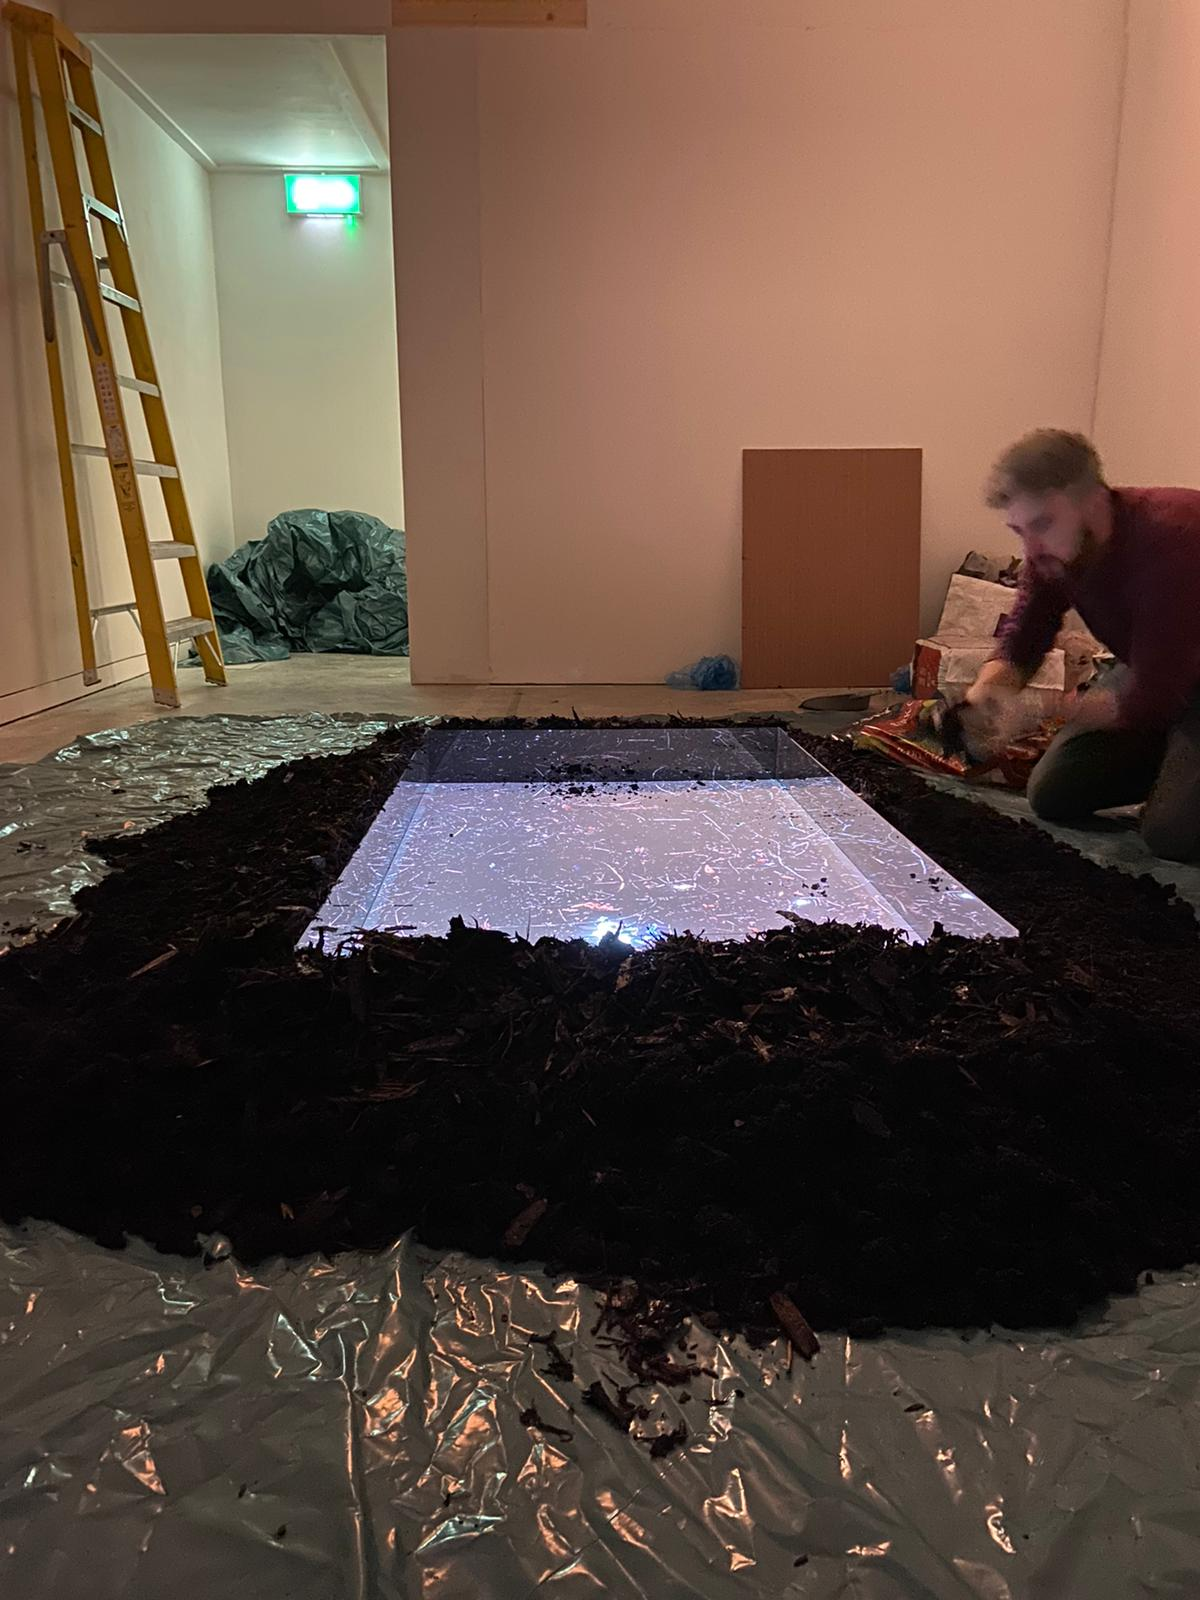 Photograph of the artist installting new artwork Reappropriation at the Regional Cultural Centre, Letterkenny